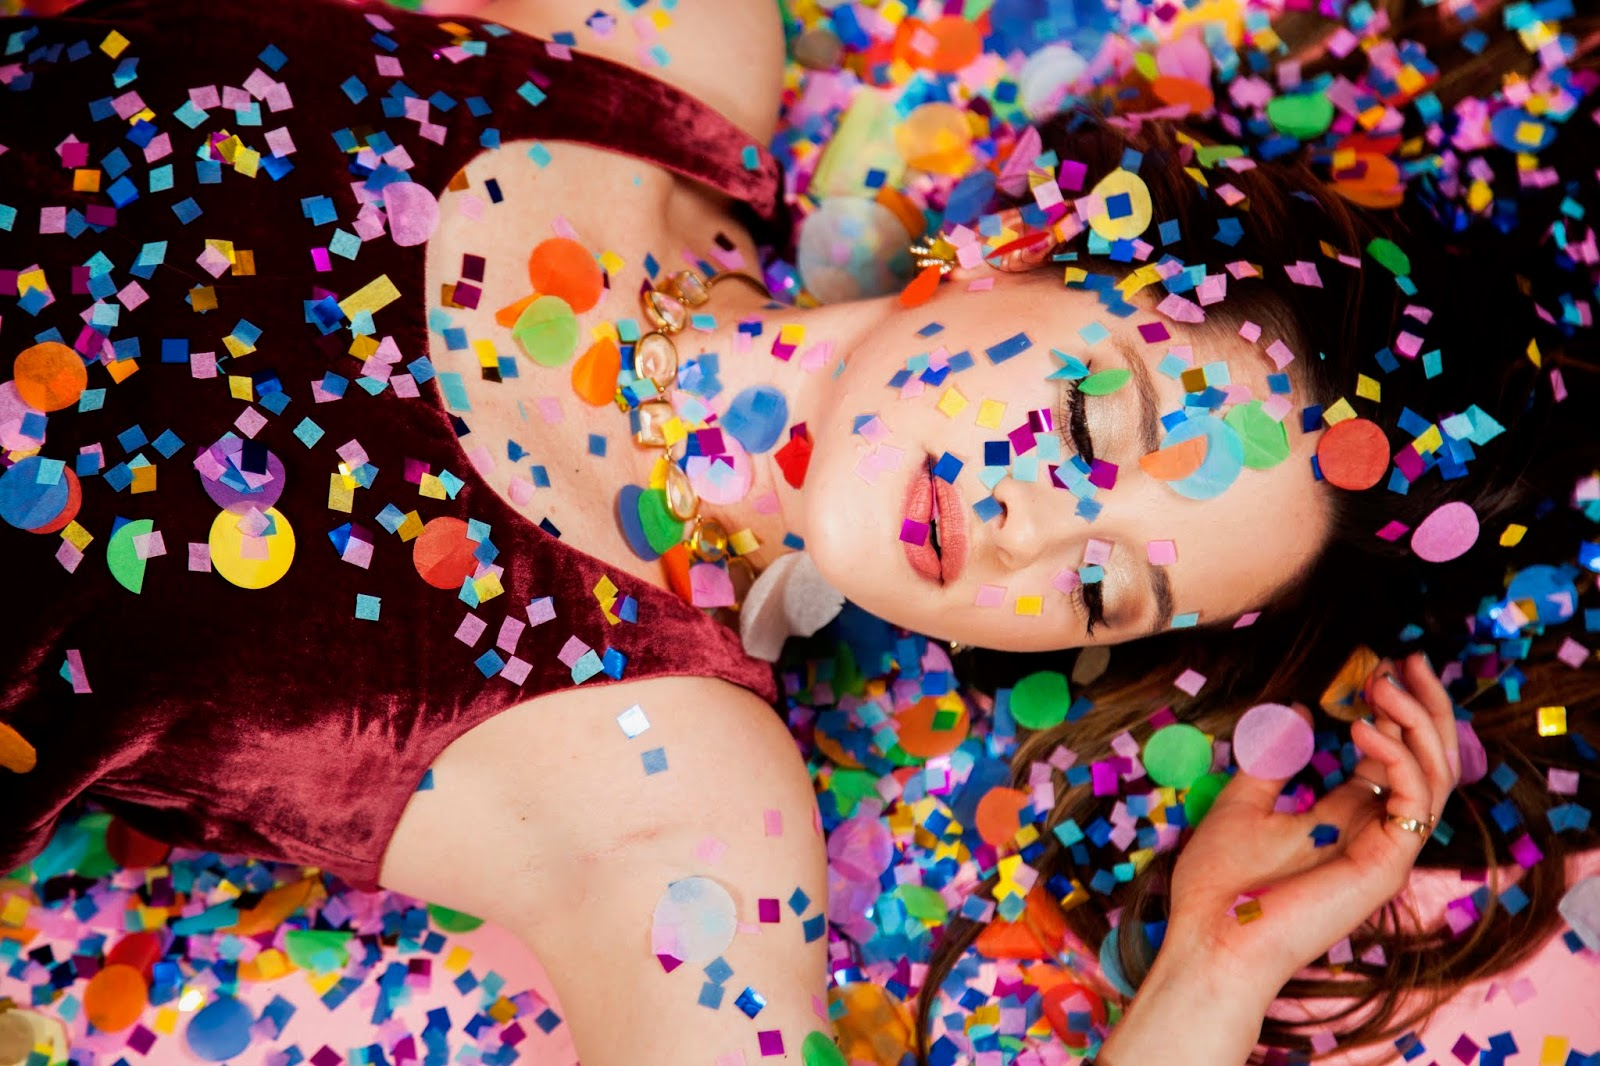 Nyc fashion blogger Kathleen Harper's confetti project pics by Jelena Aleksich